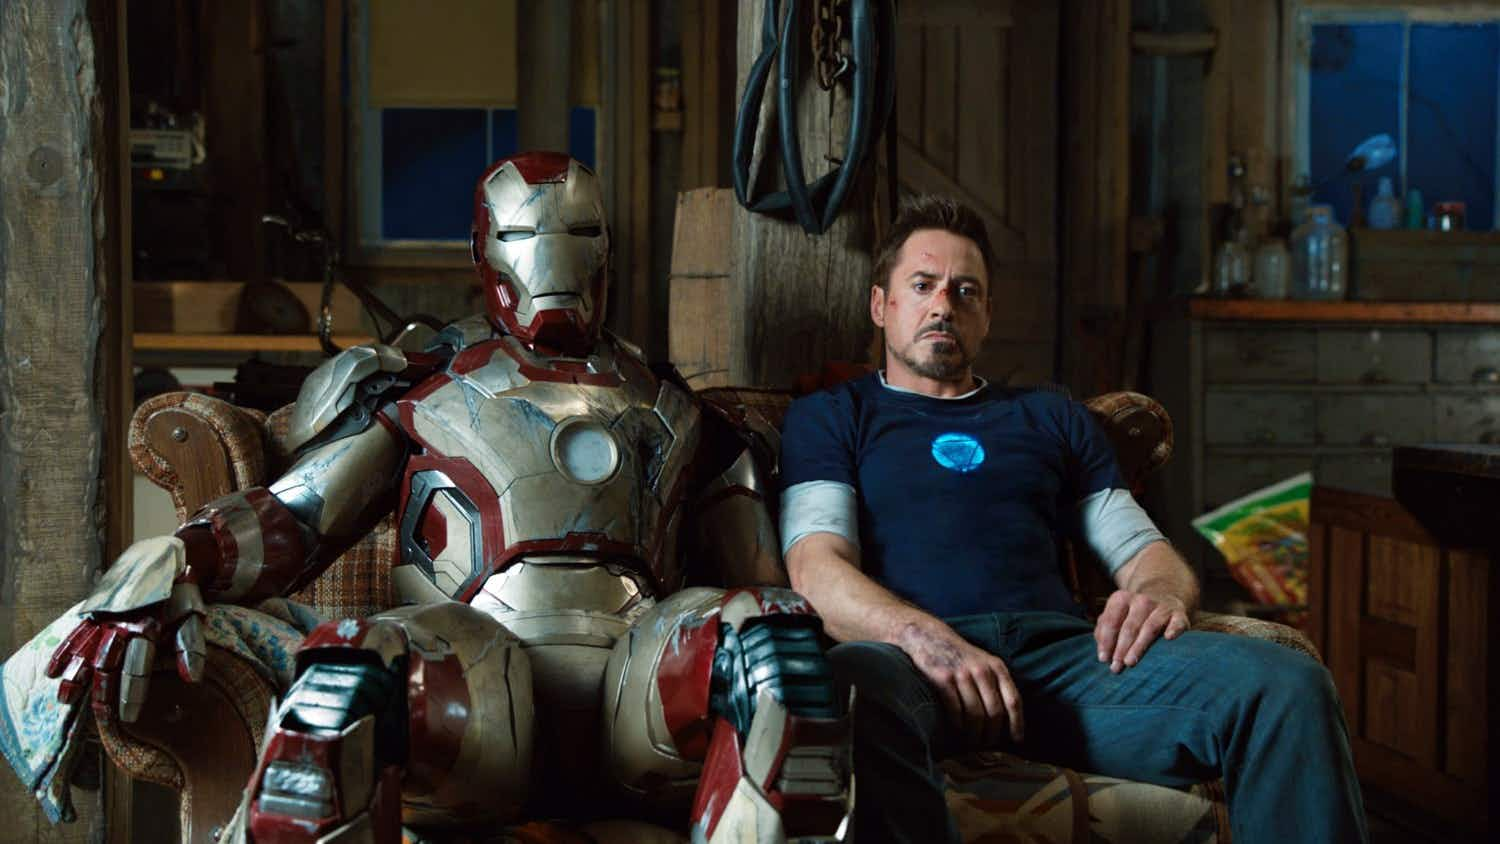 Live like Iron Man in Tony Stark's cabin in the woods